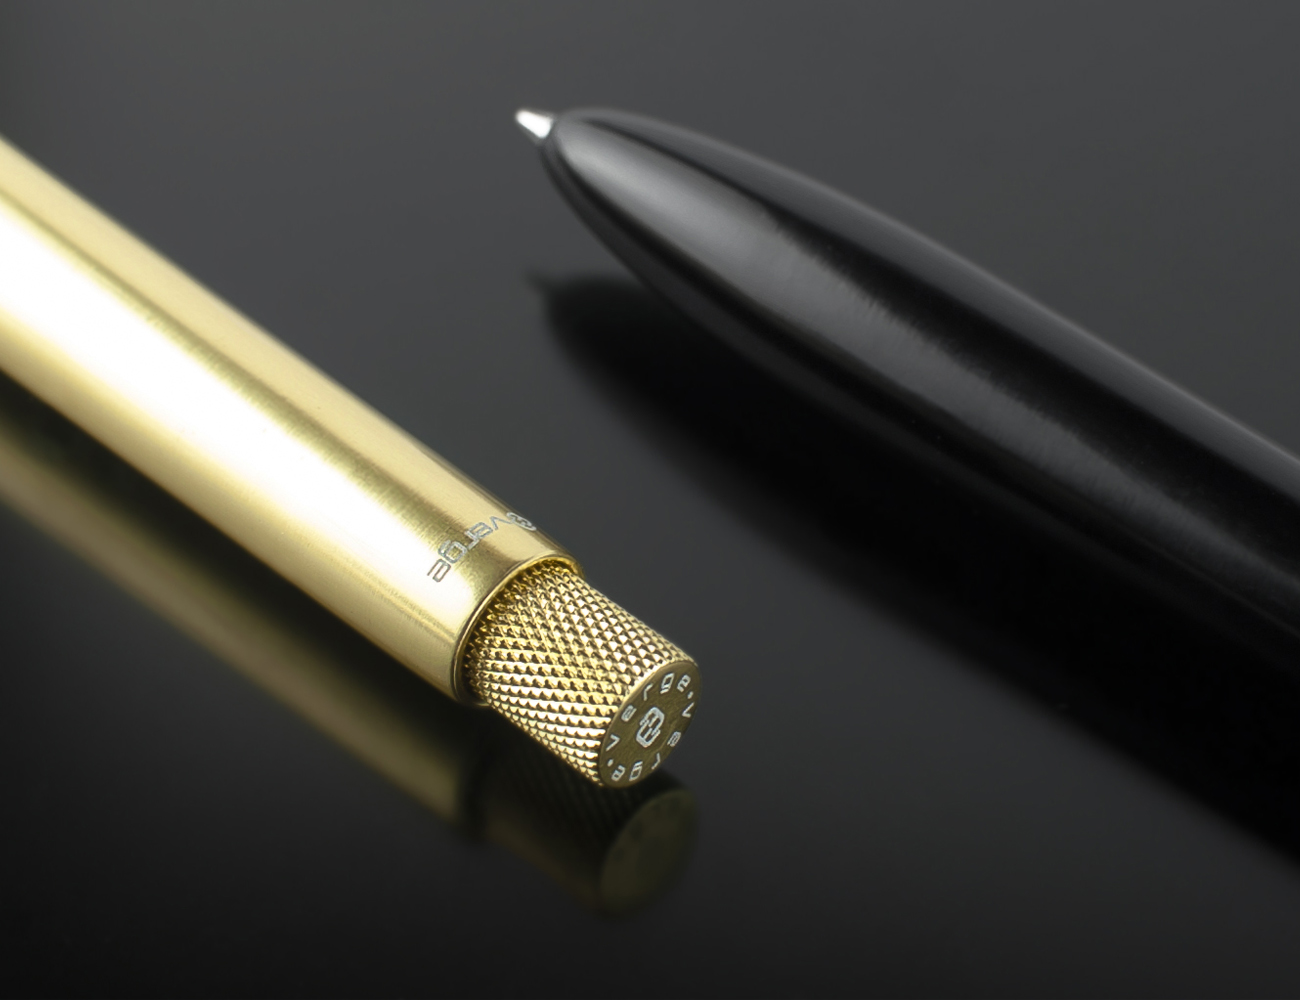 The Most Minimalistic Pen by Verge